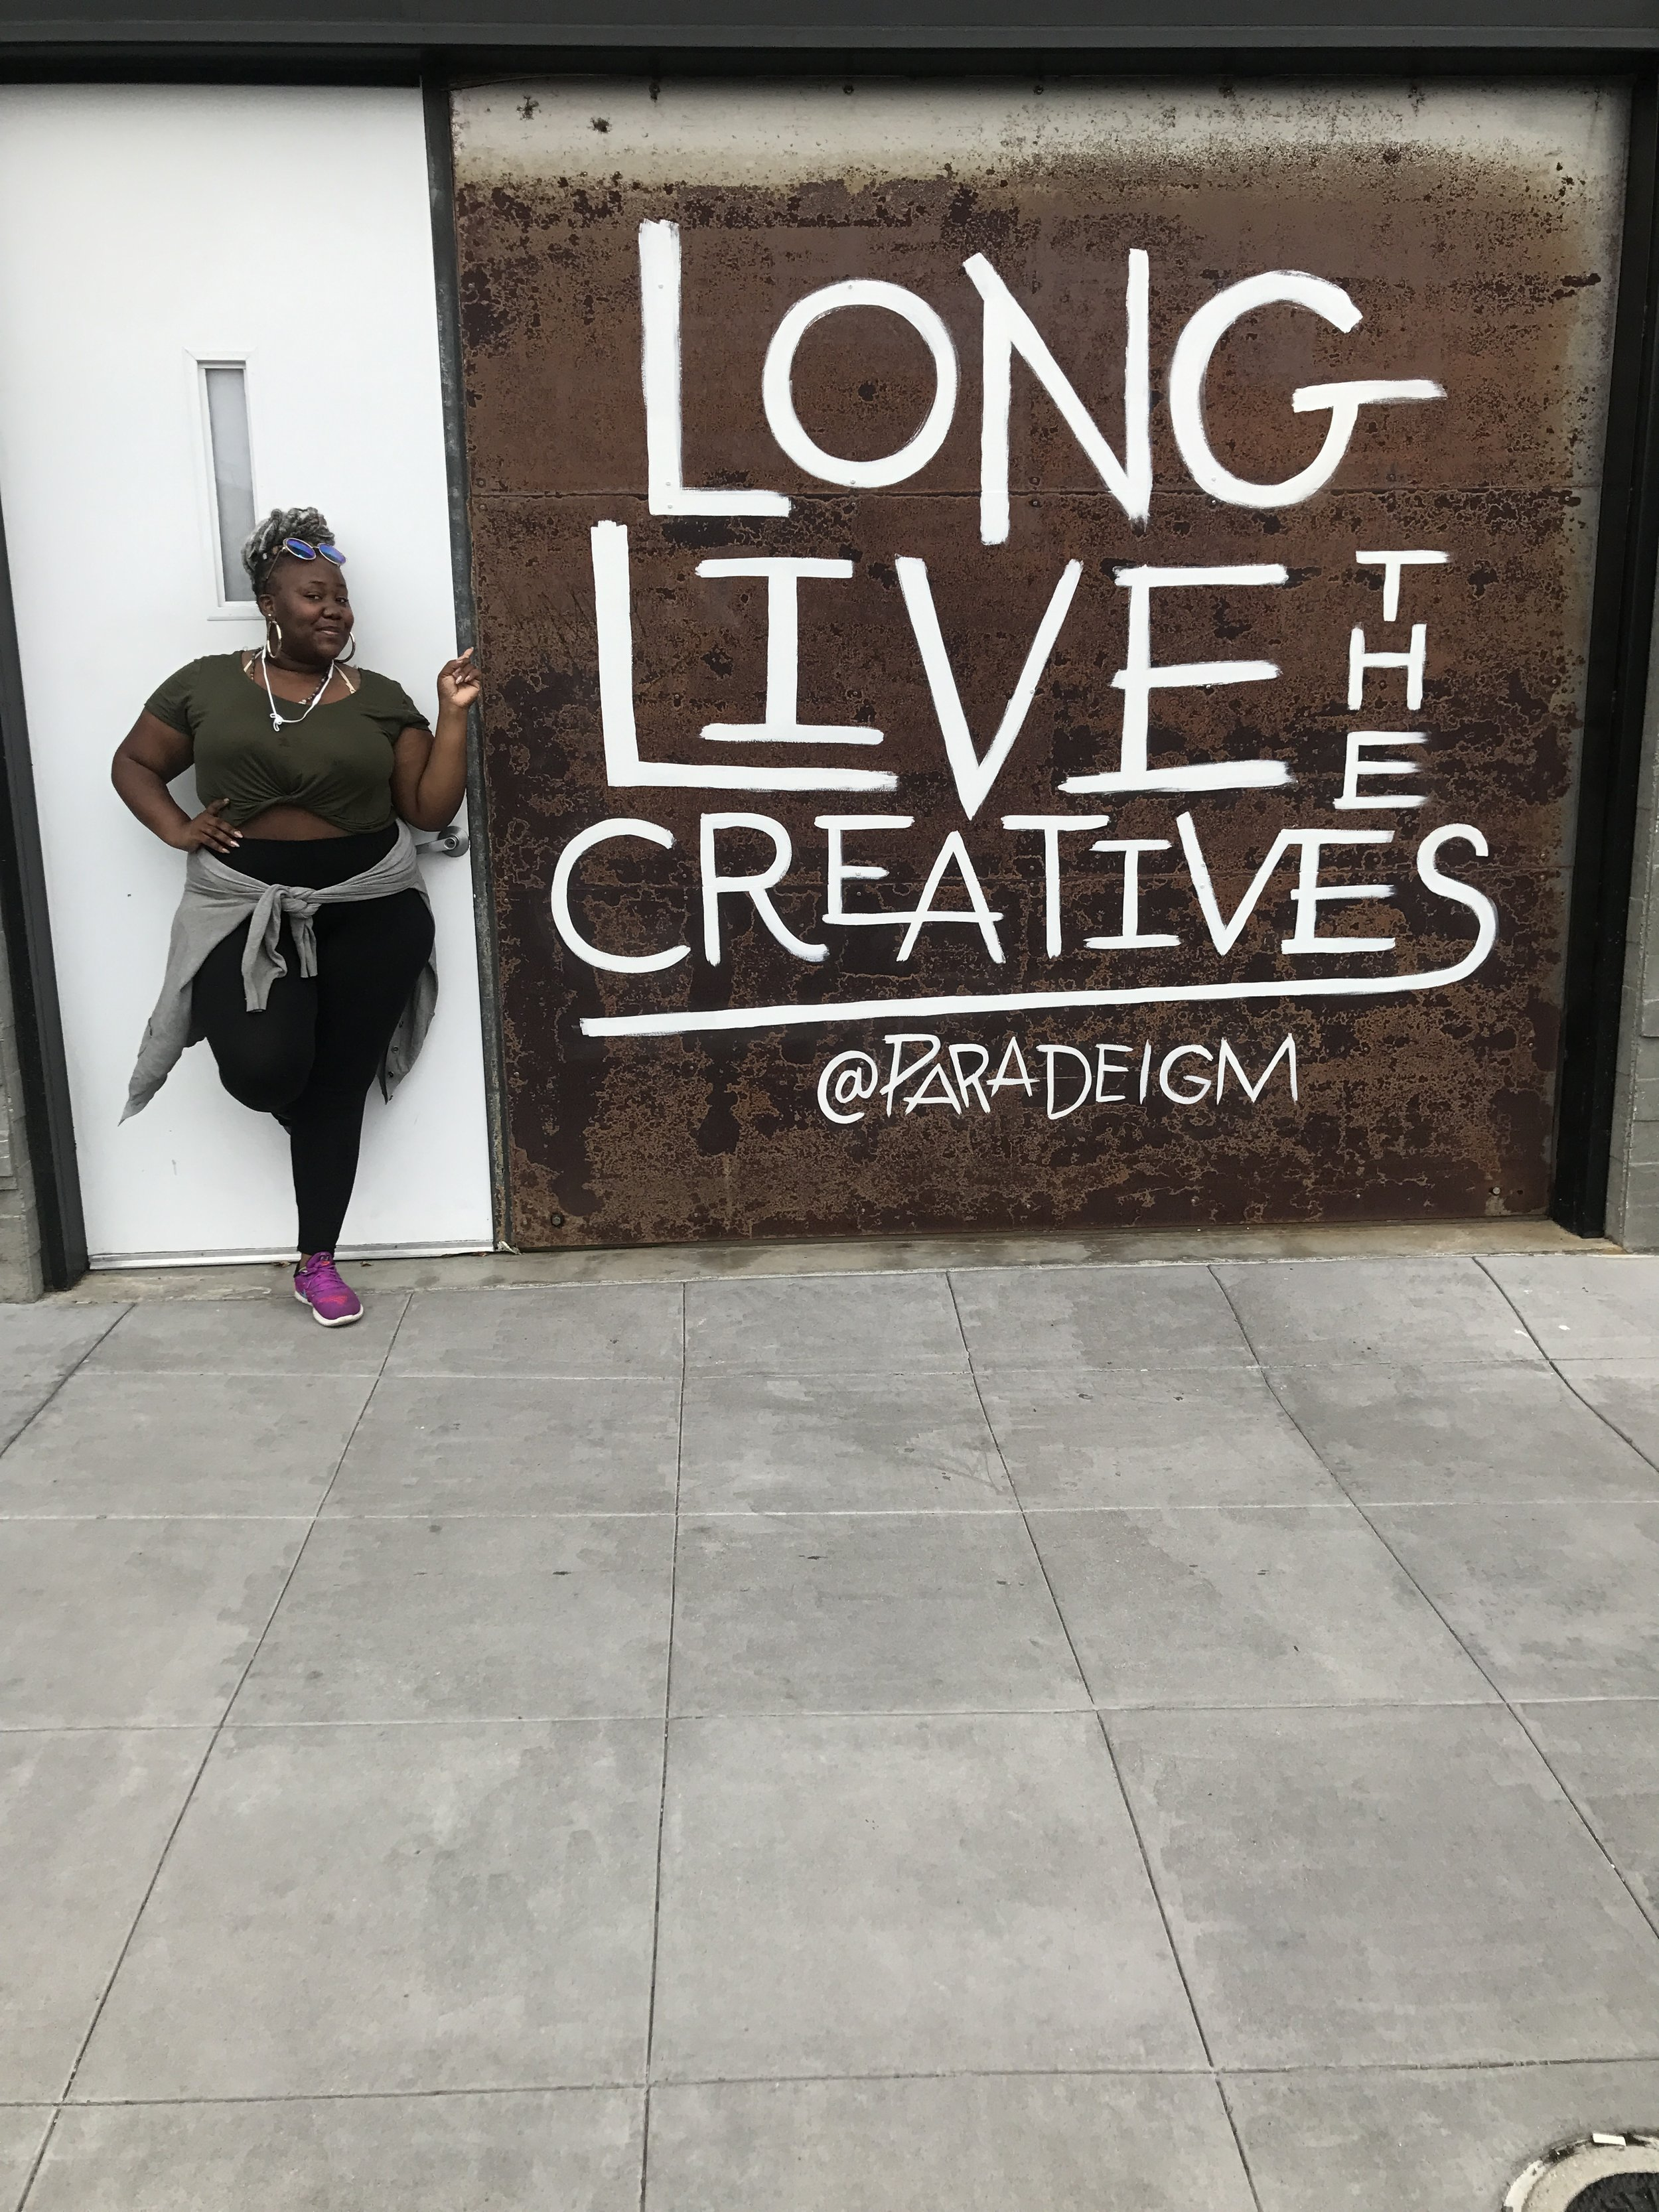 As soon as I saw this wall, I knew I had to take a pic with it!